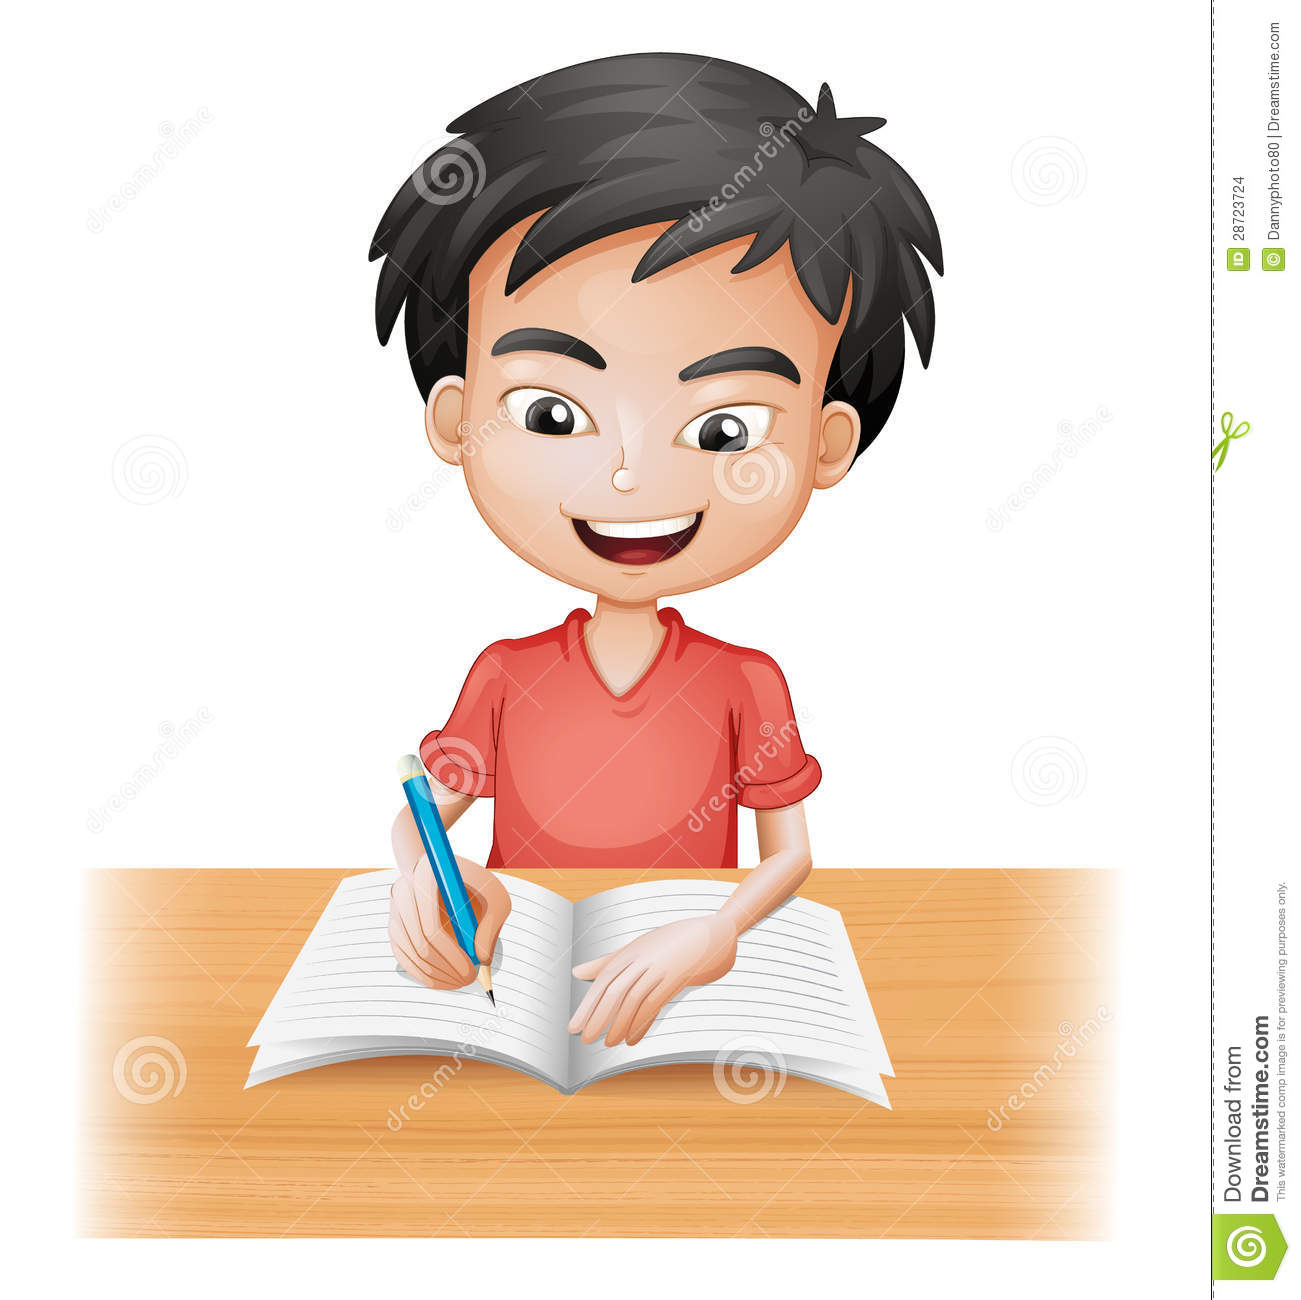 Essay on importance of girl education